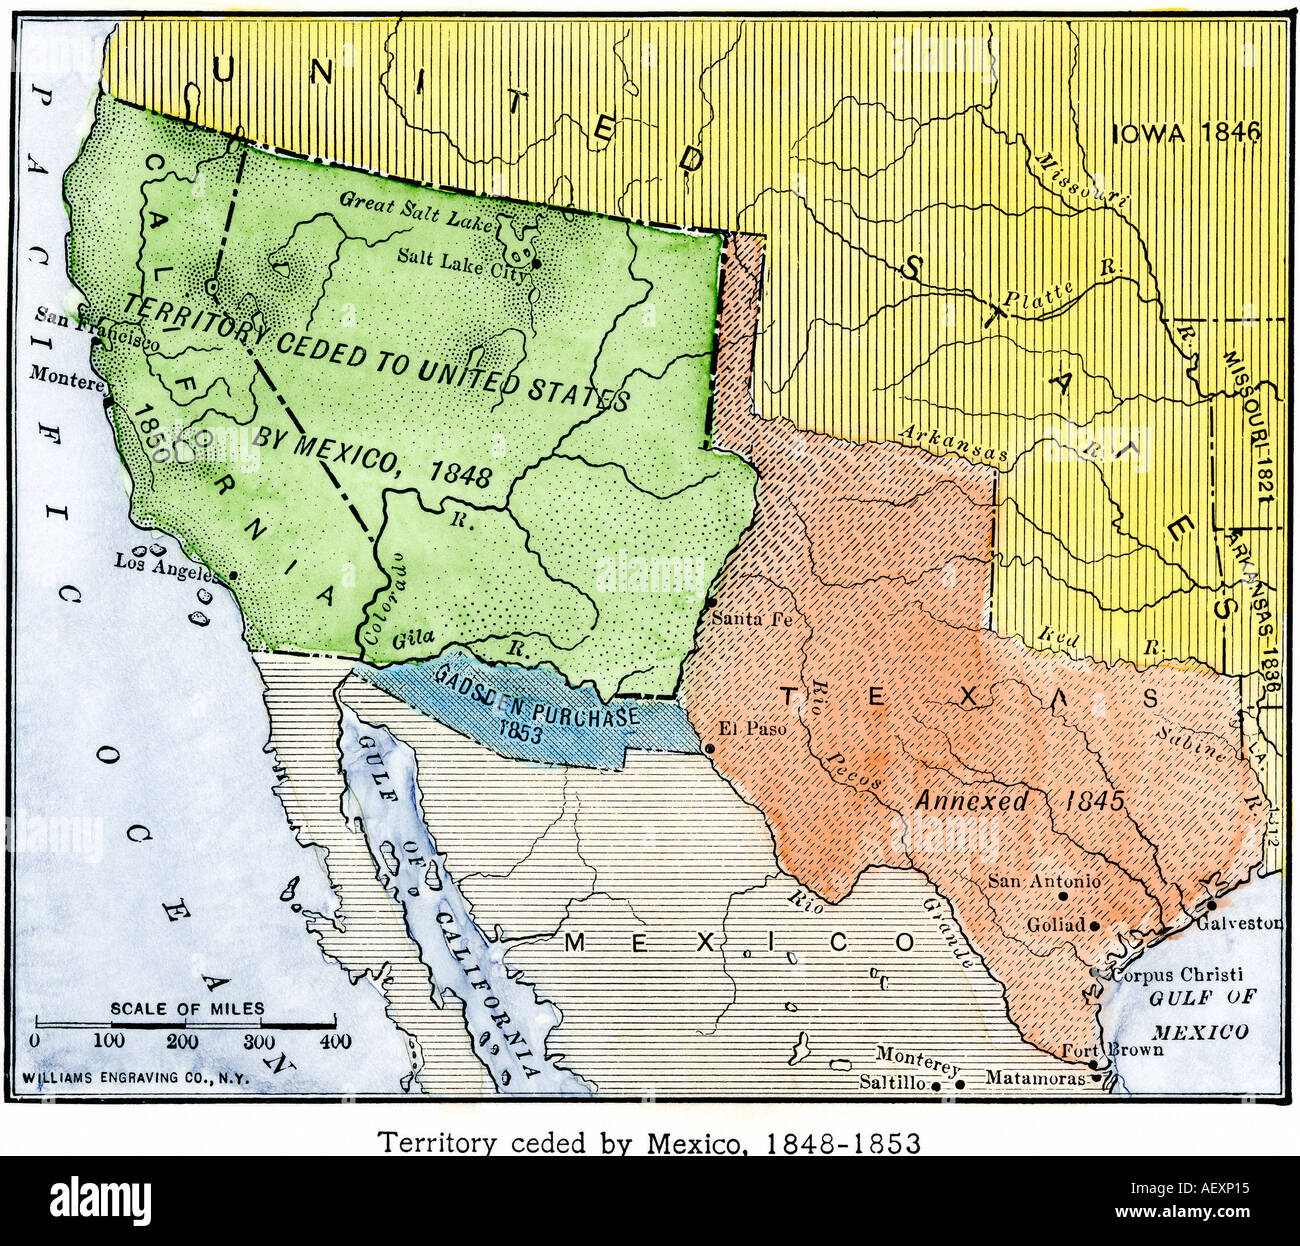 Map Of The Territory Ceded By Mexico To The US After The Mexican - Map of us and mexico